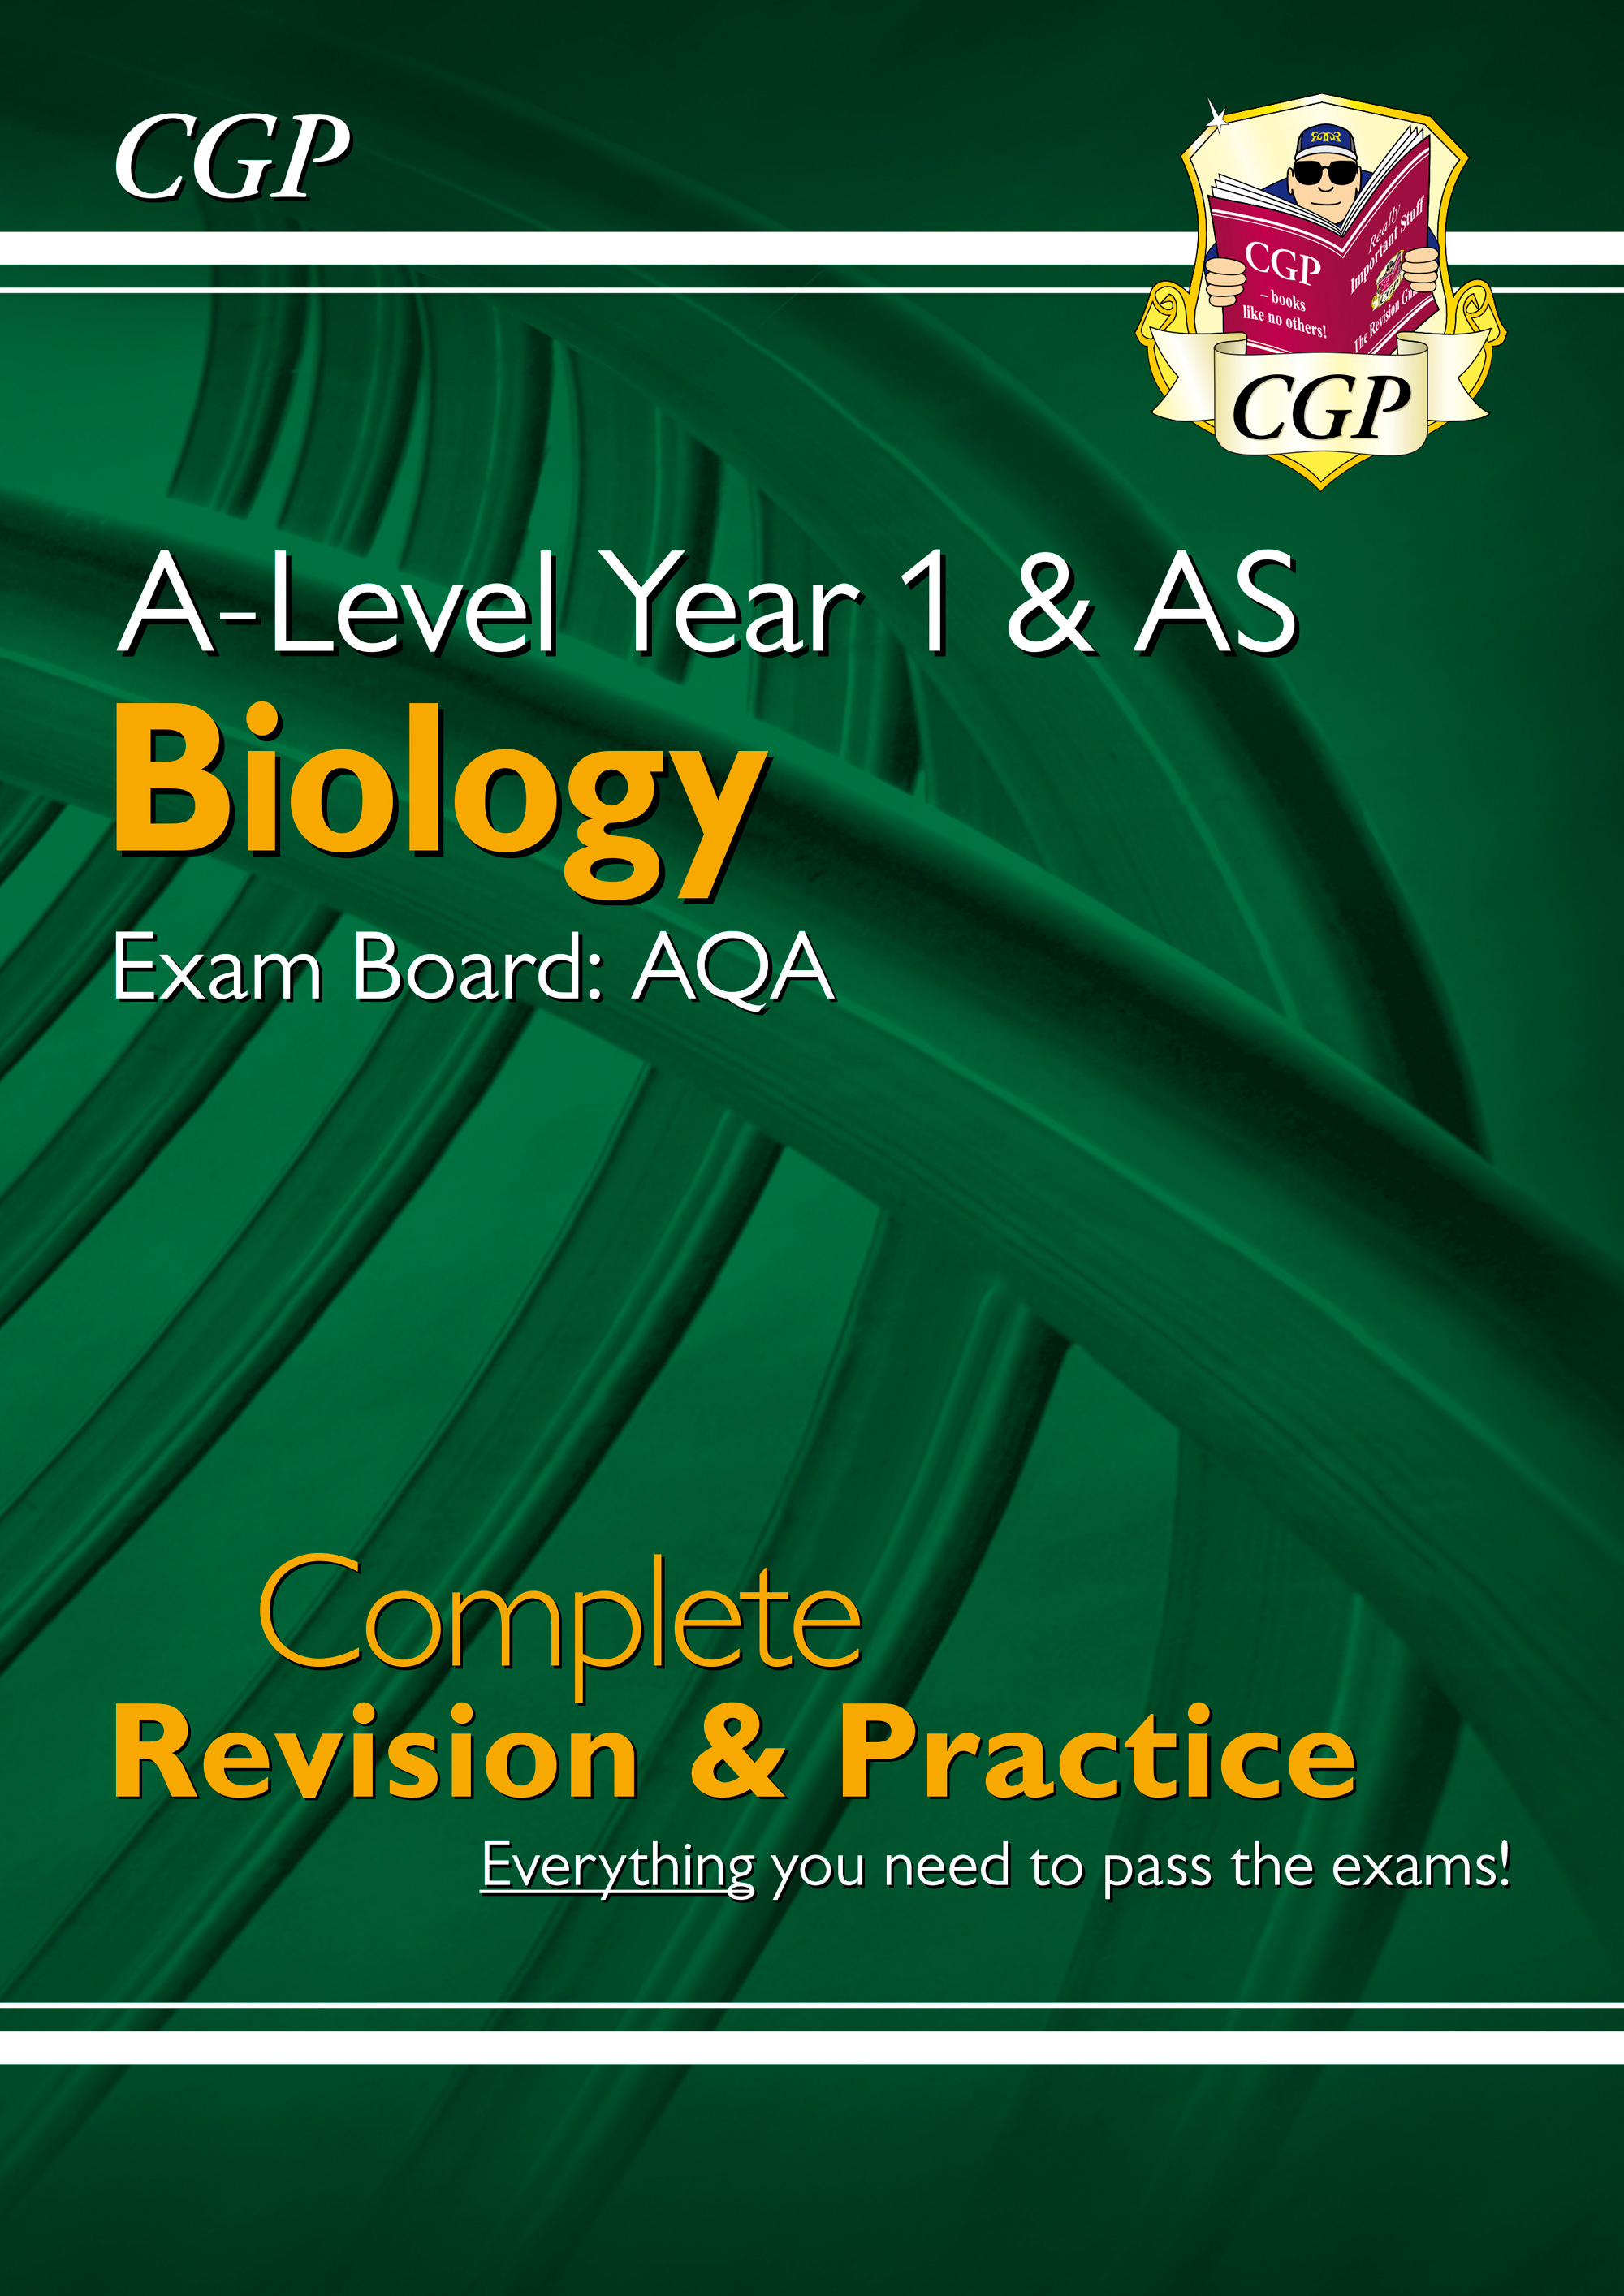 BAR54DK - New A-Level Biology for 2018: AQA Year 1 & AS Complete Revision & Practice